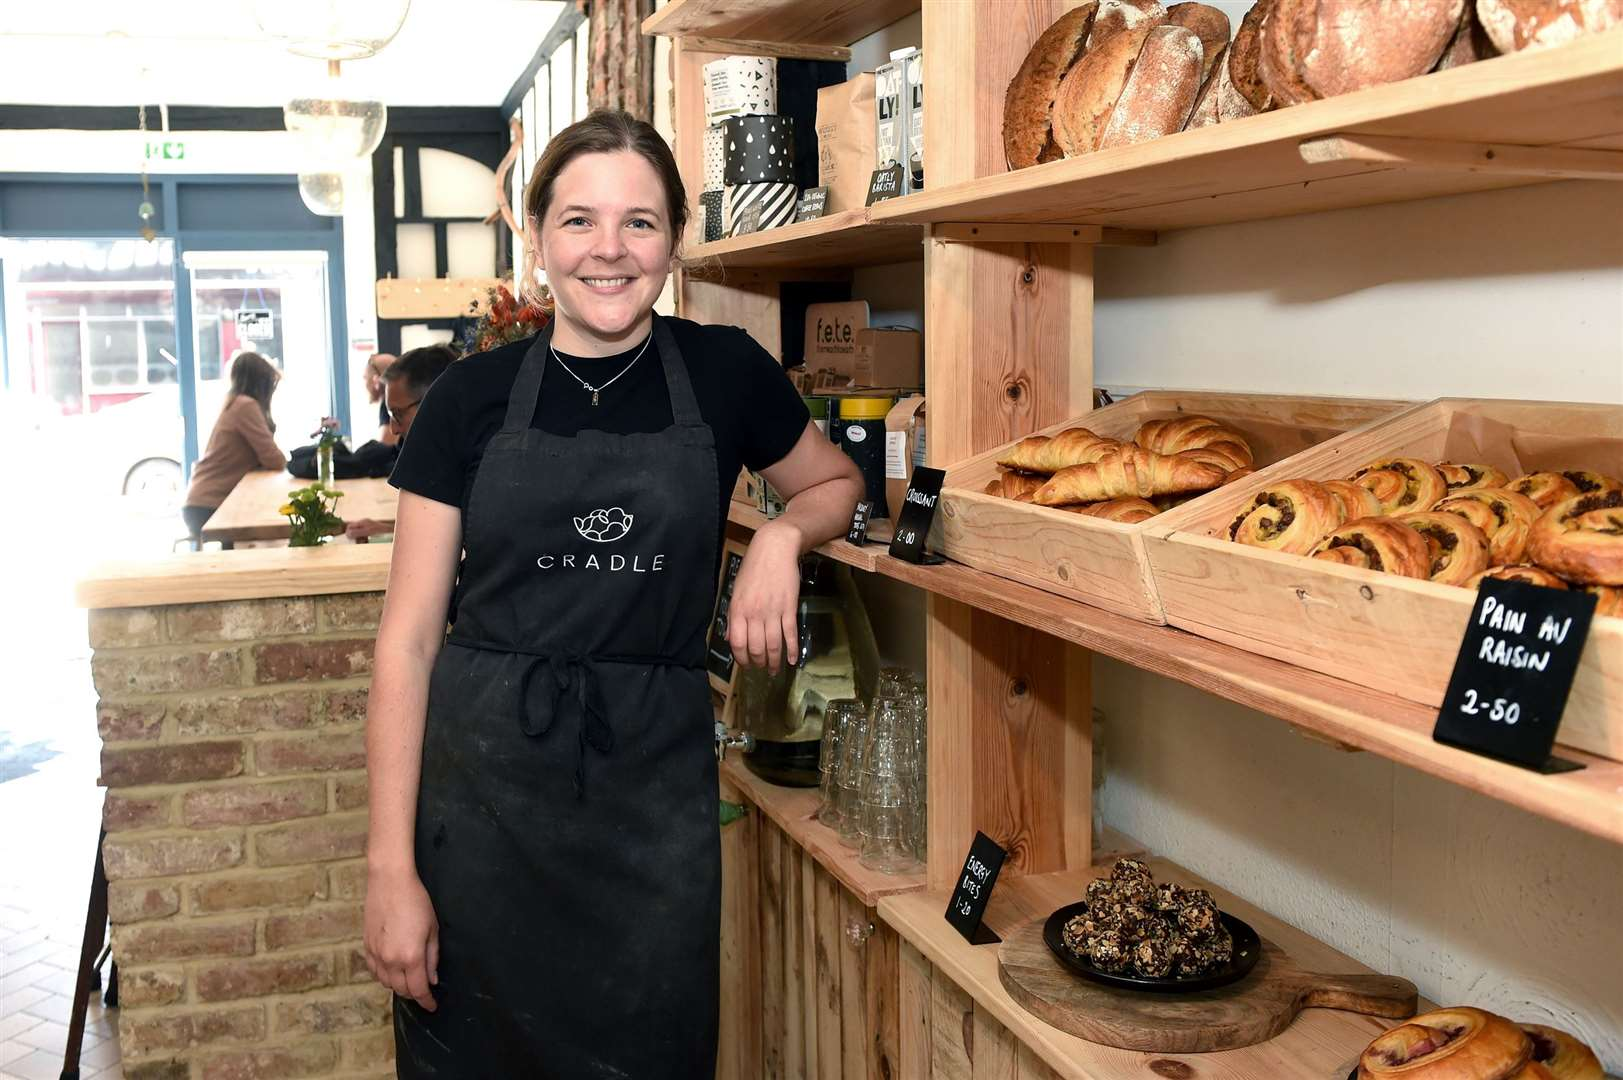 Cradle cafe in North Street, Sudbury provides plant-based dishes and pastries. The business prides itself on producing food from plant-based products, which are ethically sourced and boosts biodiversity...Pictured: Holly Sutton...PICTURE: Mecha Morton ... (15399497)